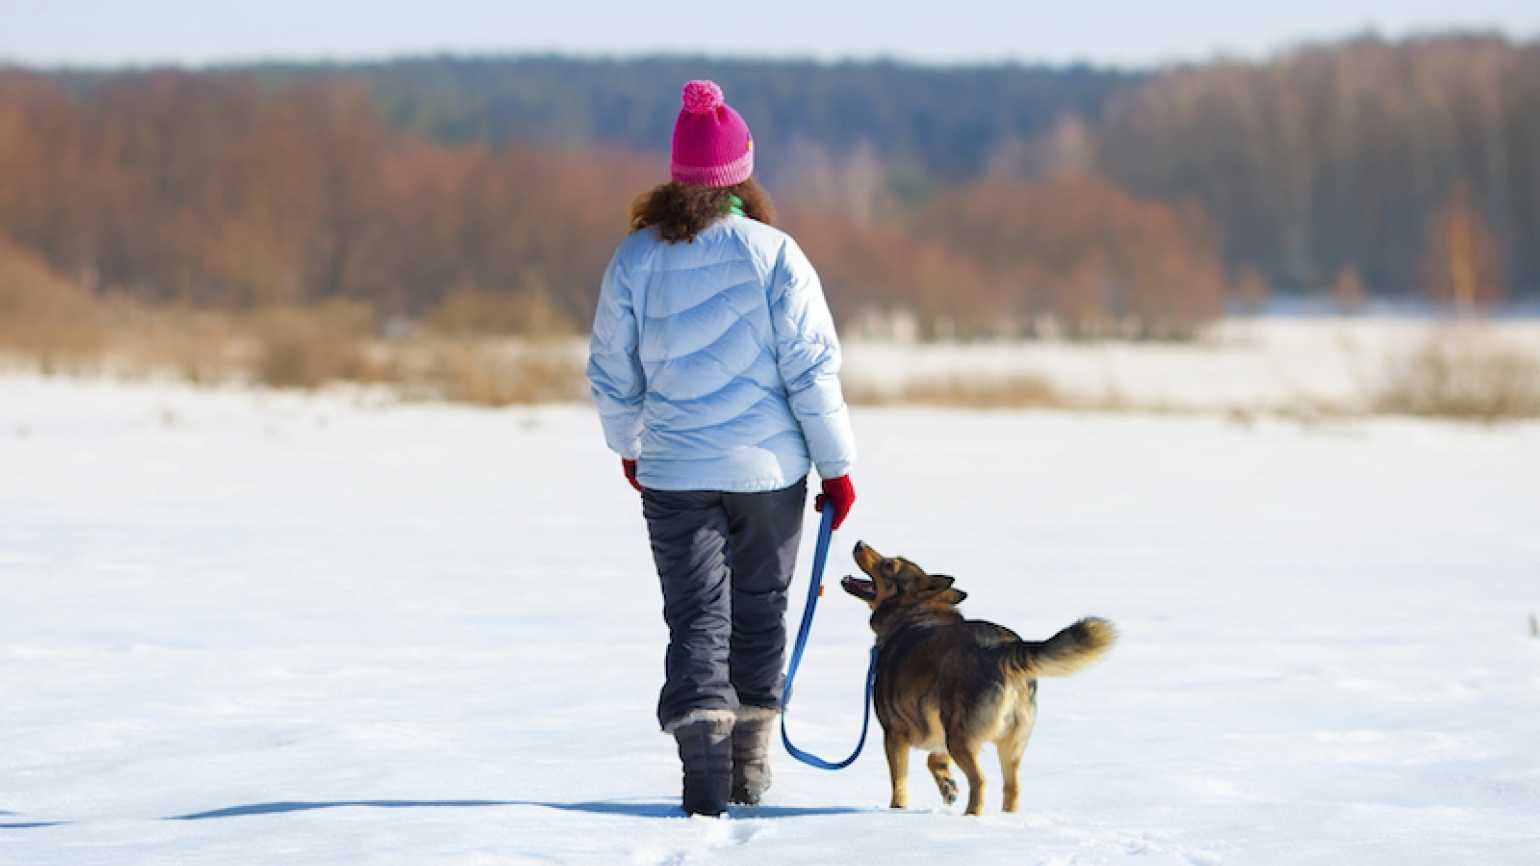 A winter walk. Photo by vvvita, Thinkstock.